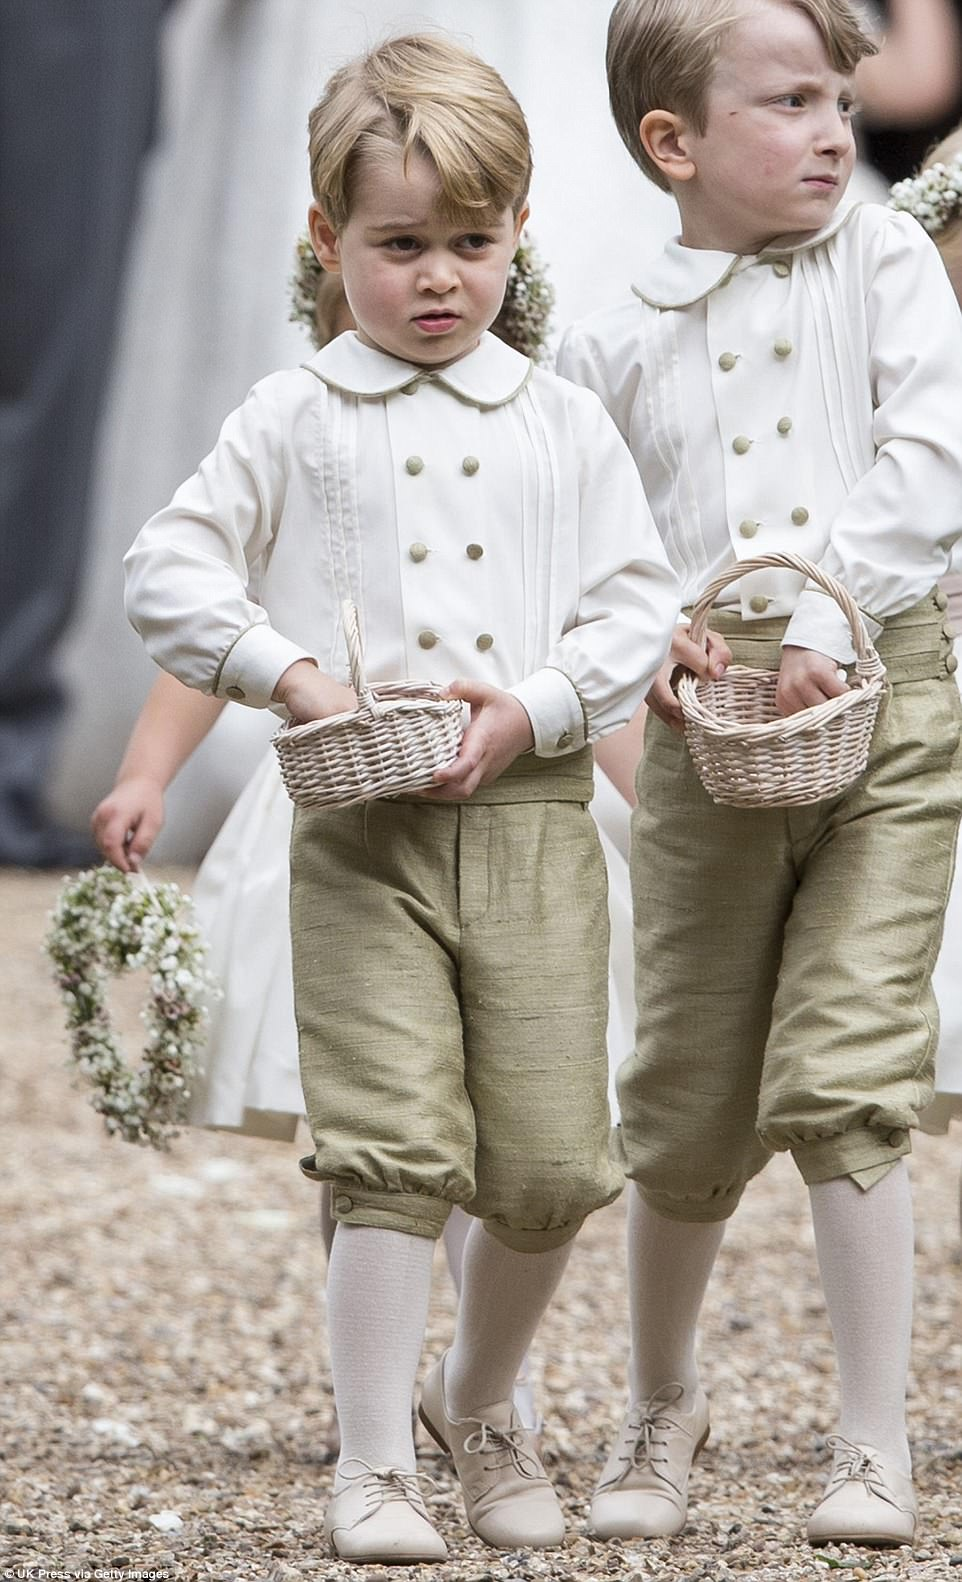 Prince William Catherine Duchess of Cambridge Prince George and Princess Charlotte Elizabeth Diana attended Pippa Middleton Wedding 0040